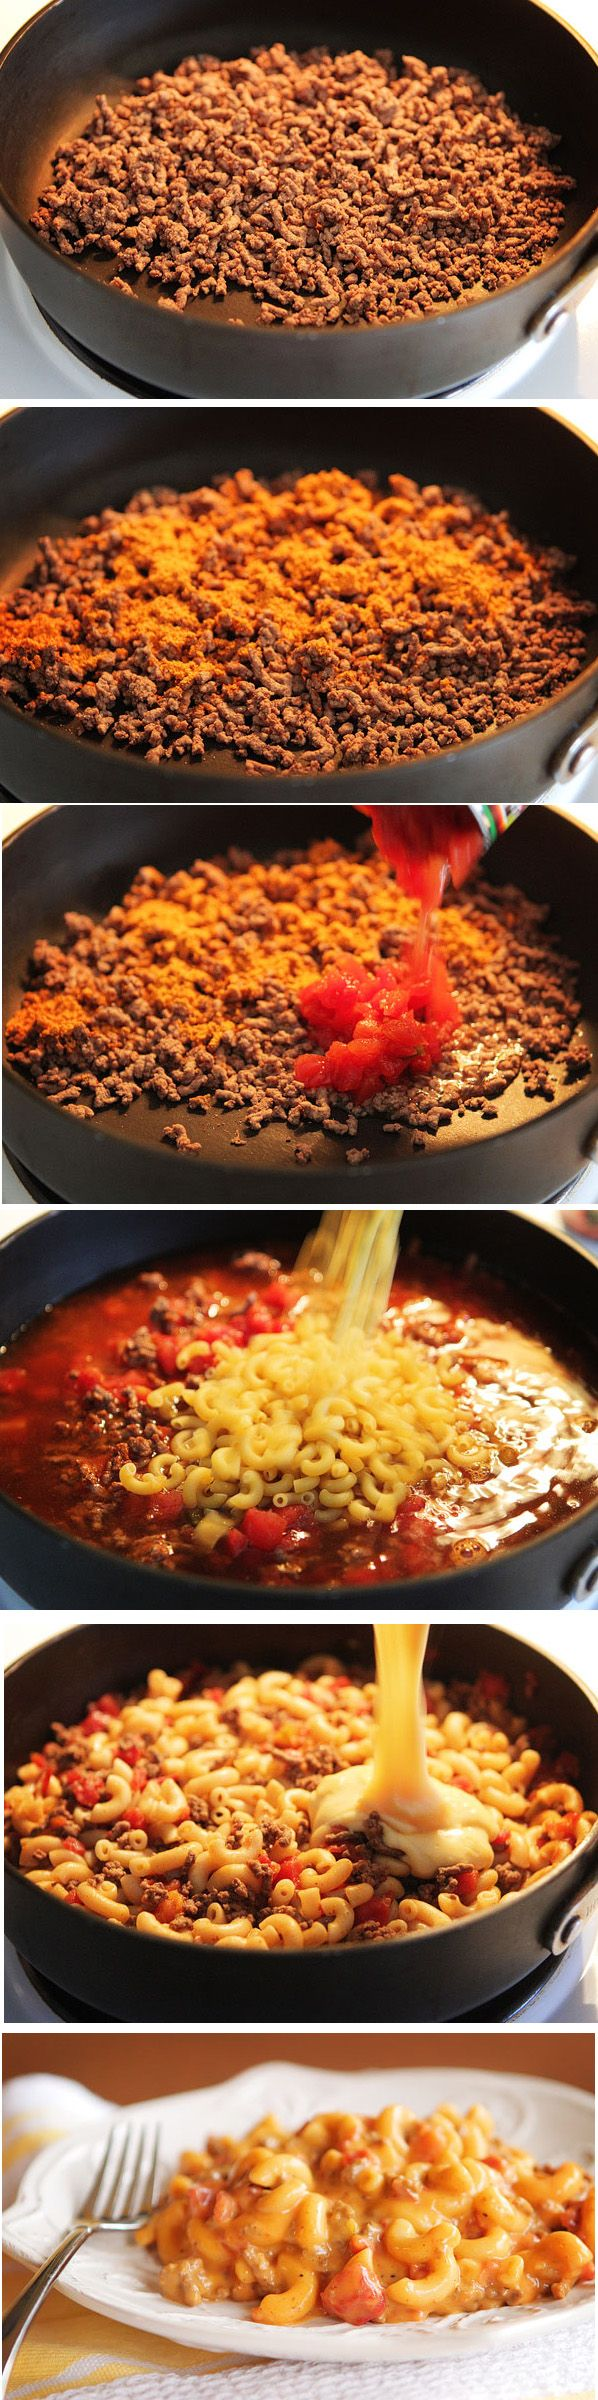 Ingredients 1 lb lean hamburger meat 1 pkg taco seasoning 1 can Rotel tomatoes and green chilies 2 cups beef broth 1 cup whole grain elbow macaroni